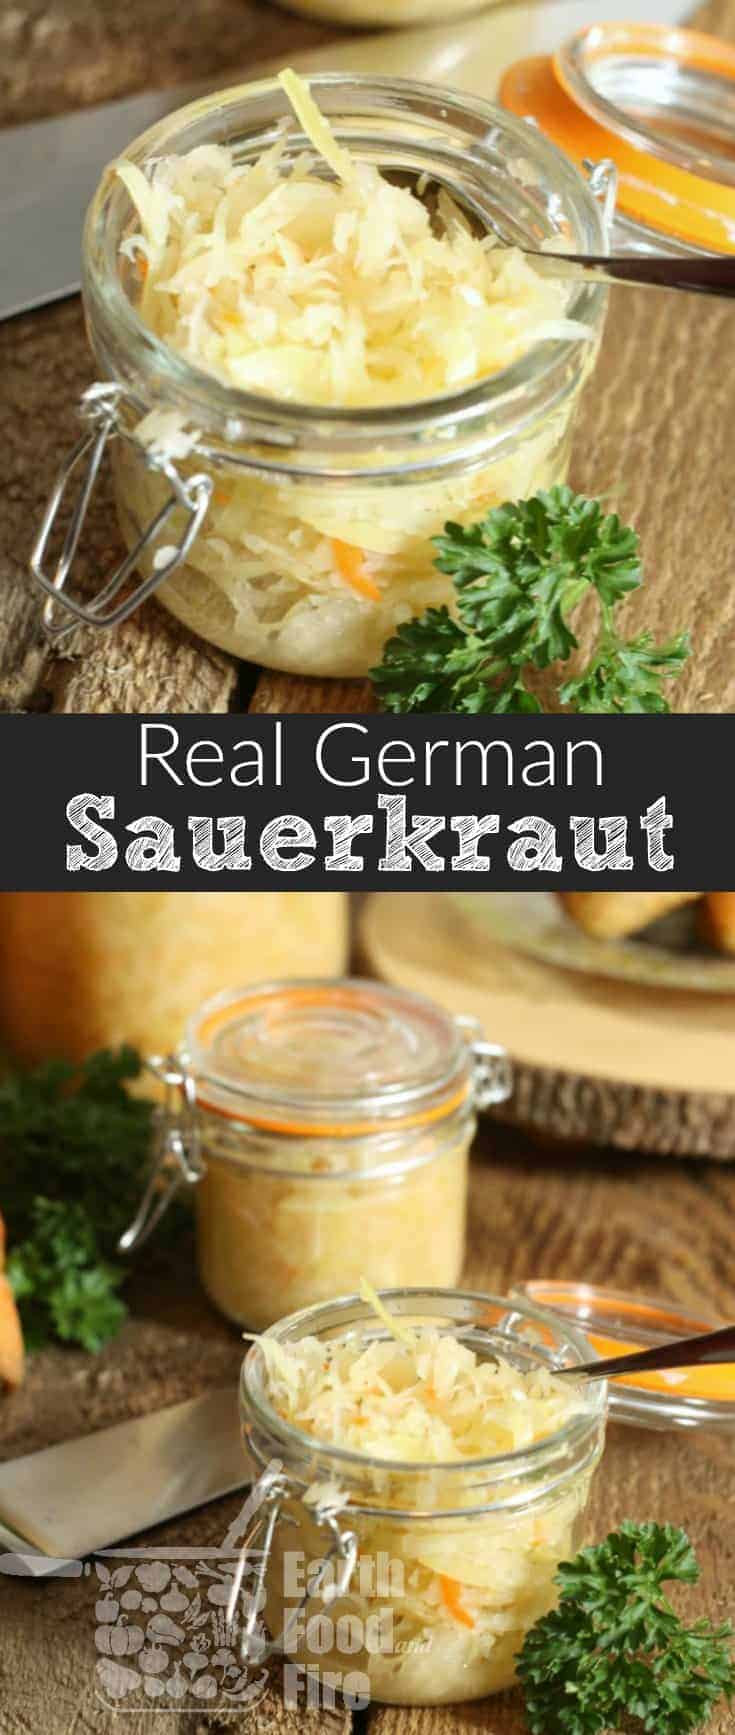 Easy to make a great for your health, learn how to make your own German Sauerkraut. Full of probiotics, vitamins, and a great way to preserve cabbage for the winter, sauerkraut can be eaten cold or hot with various dishes and meats! #fermented #sauerkraut #cabbage #condiment